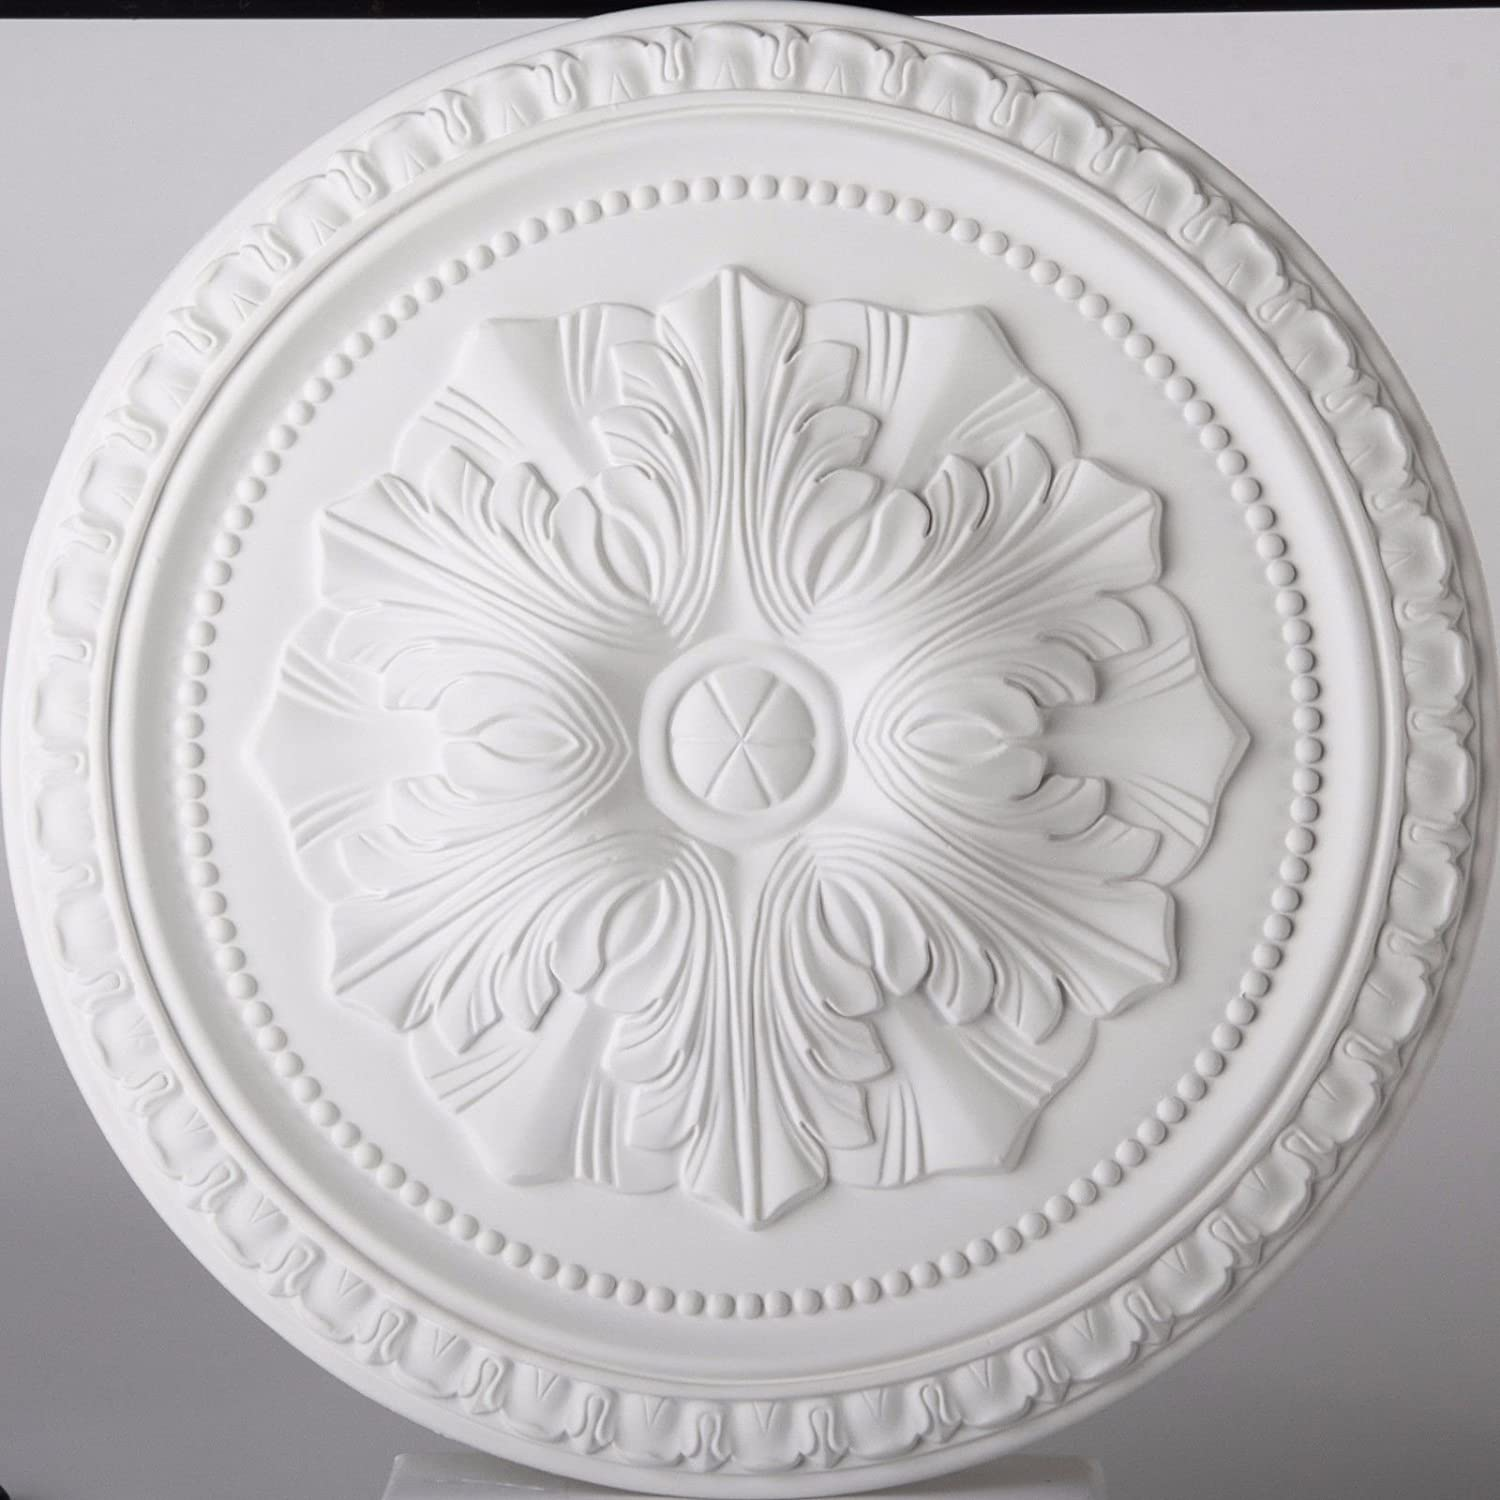 Ceiling Rose Flavia Lightweight Resin Mould Not Polystyrene Easy to Fix 45cm Copleys